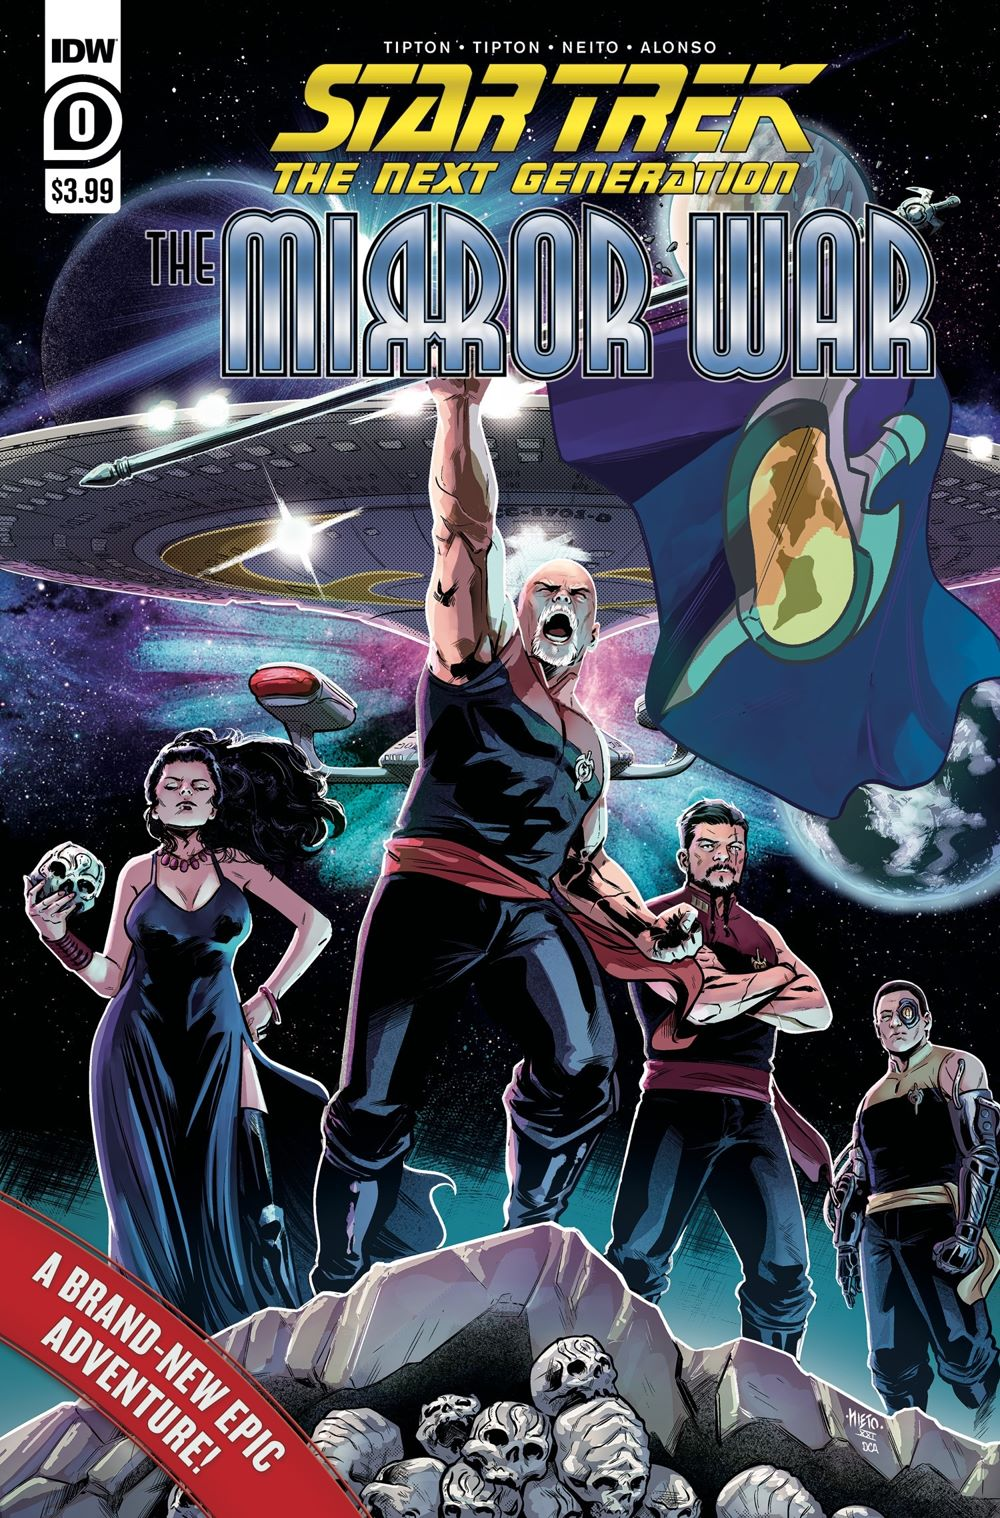 5dd01672-3d4f-da53-bab1-863eb2e7a33a STAR TREK: THE MIRROR WAR to be year-long comic book event